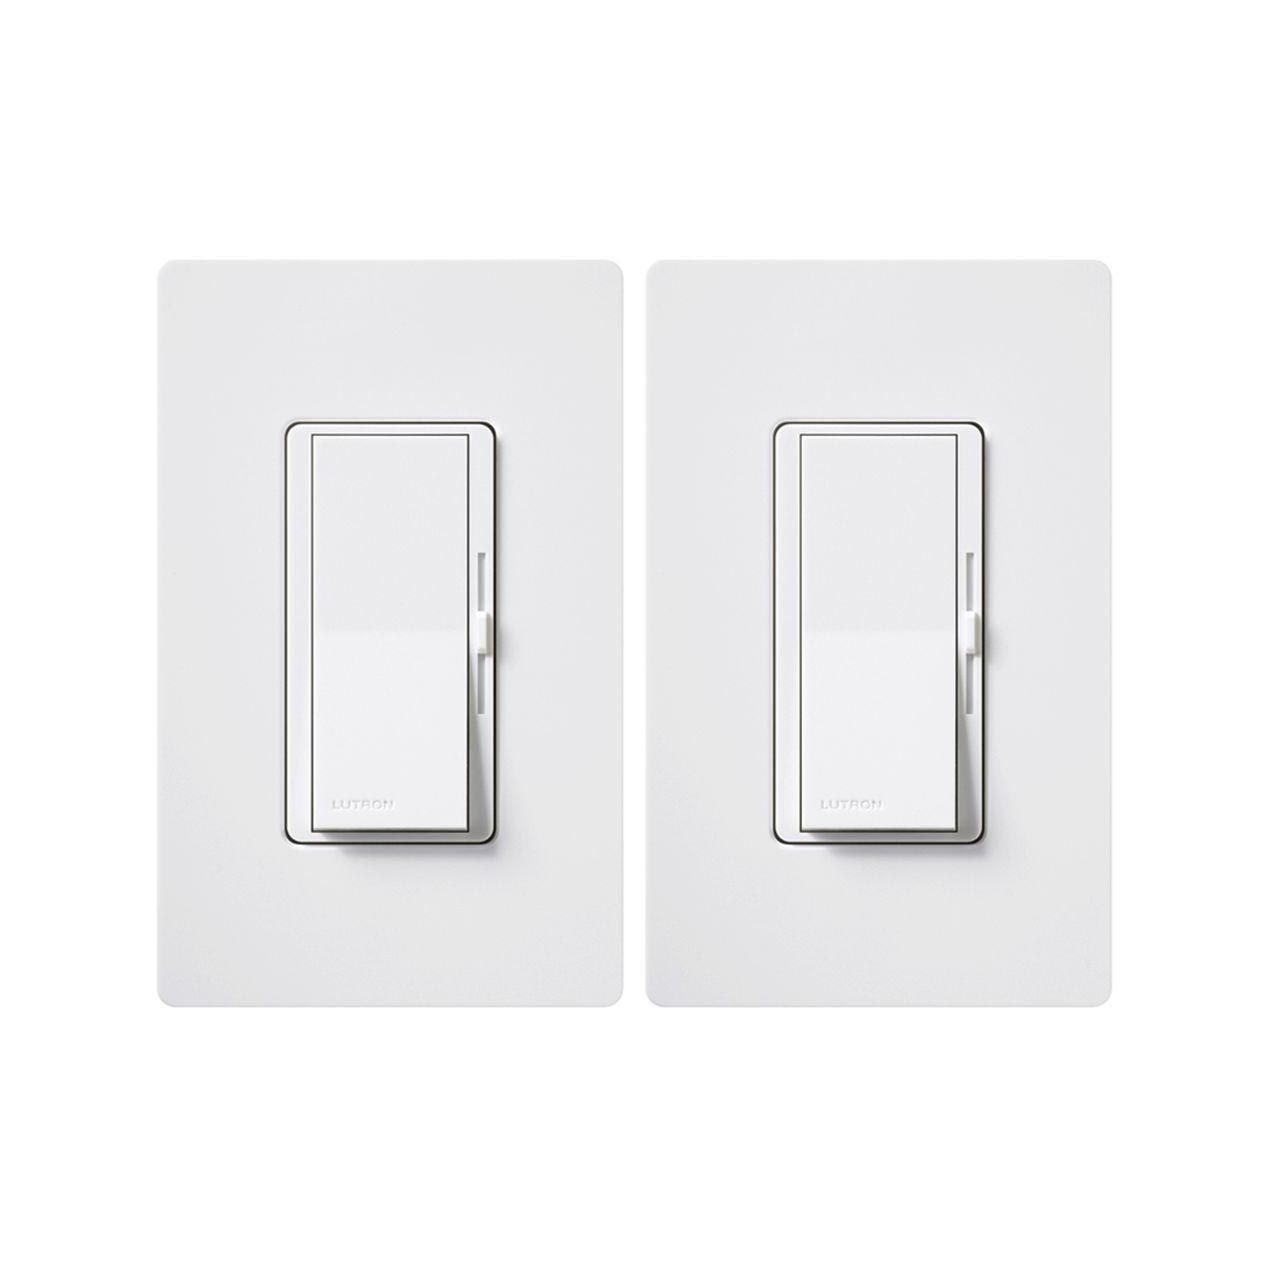 2 Pack Diva 150 Watt Single Pole 3 Way Cfl Led Dimmer With